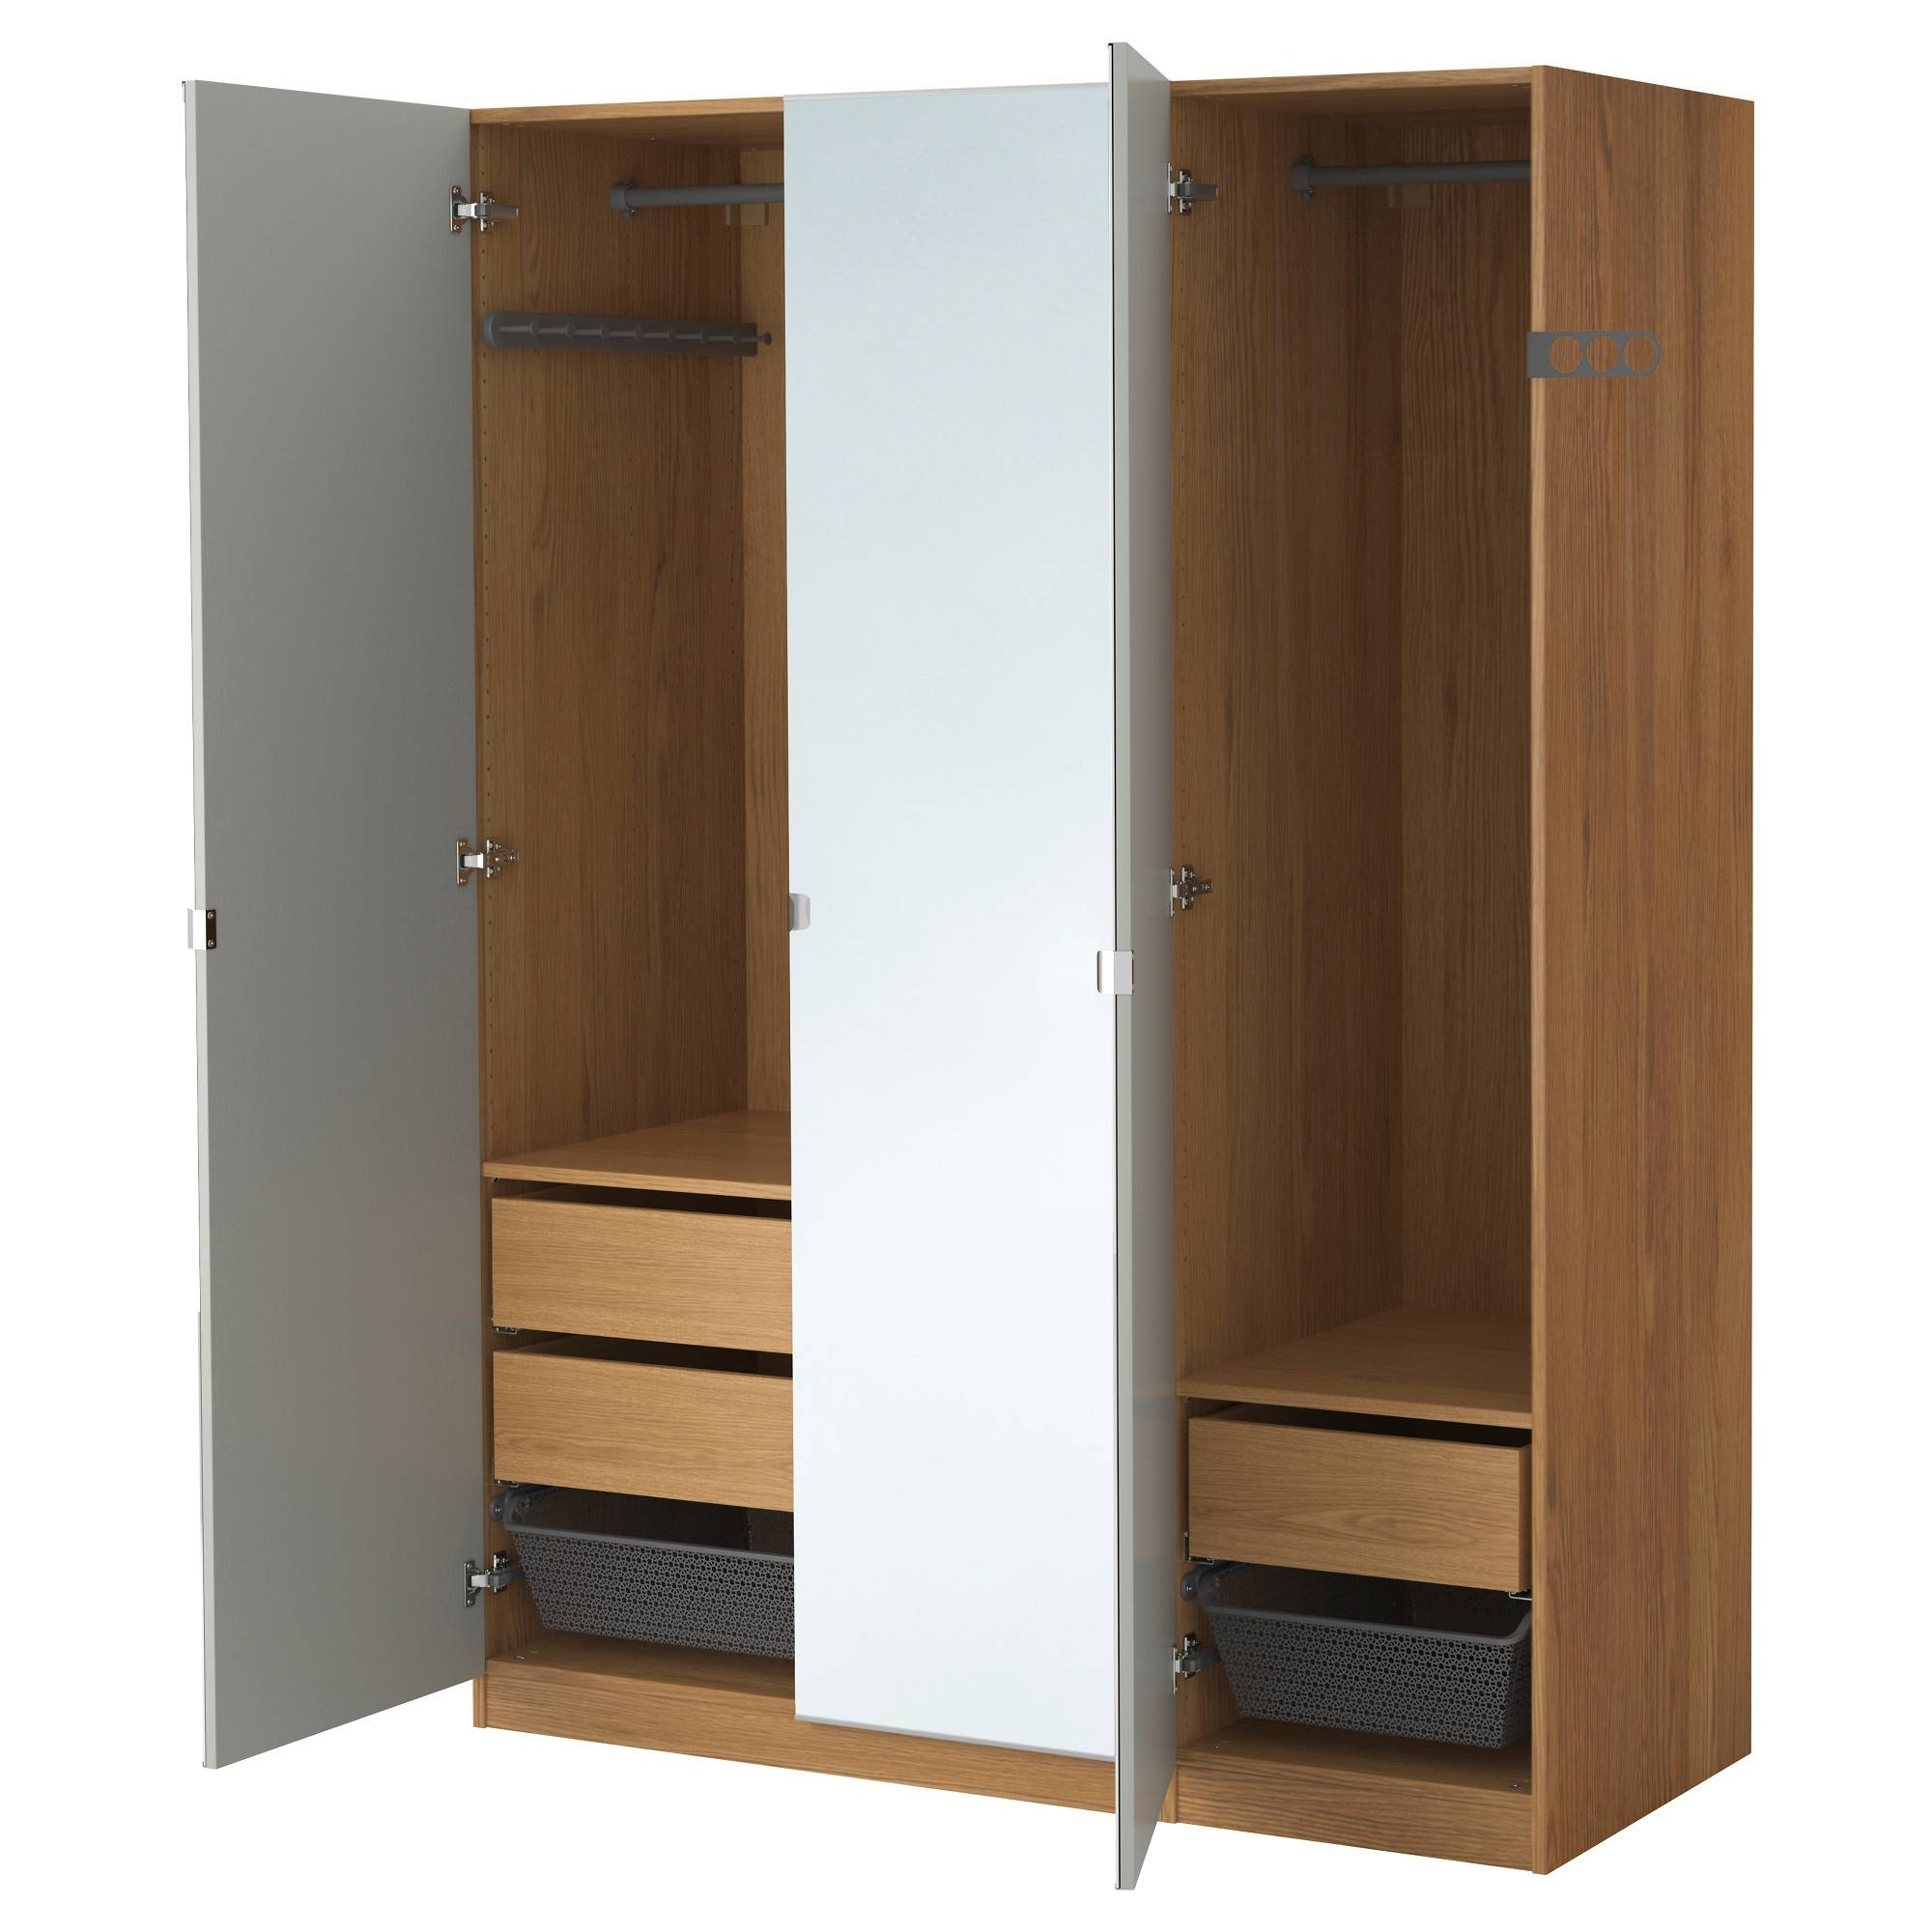 Wardrobes | Ikea Throughout Single Wardrobes With Mirror (View 14 of 15)